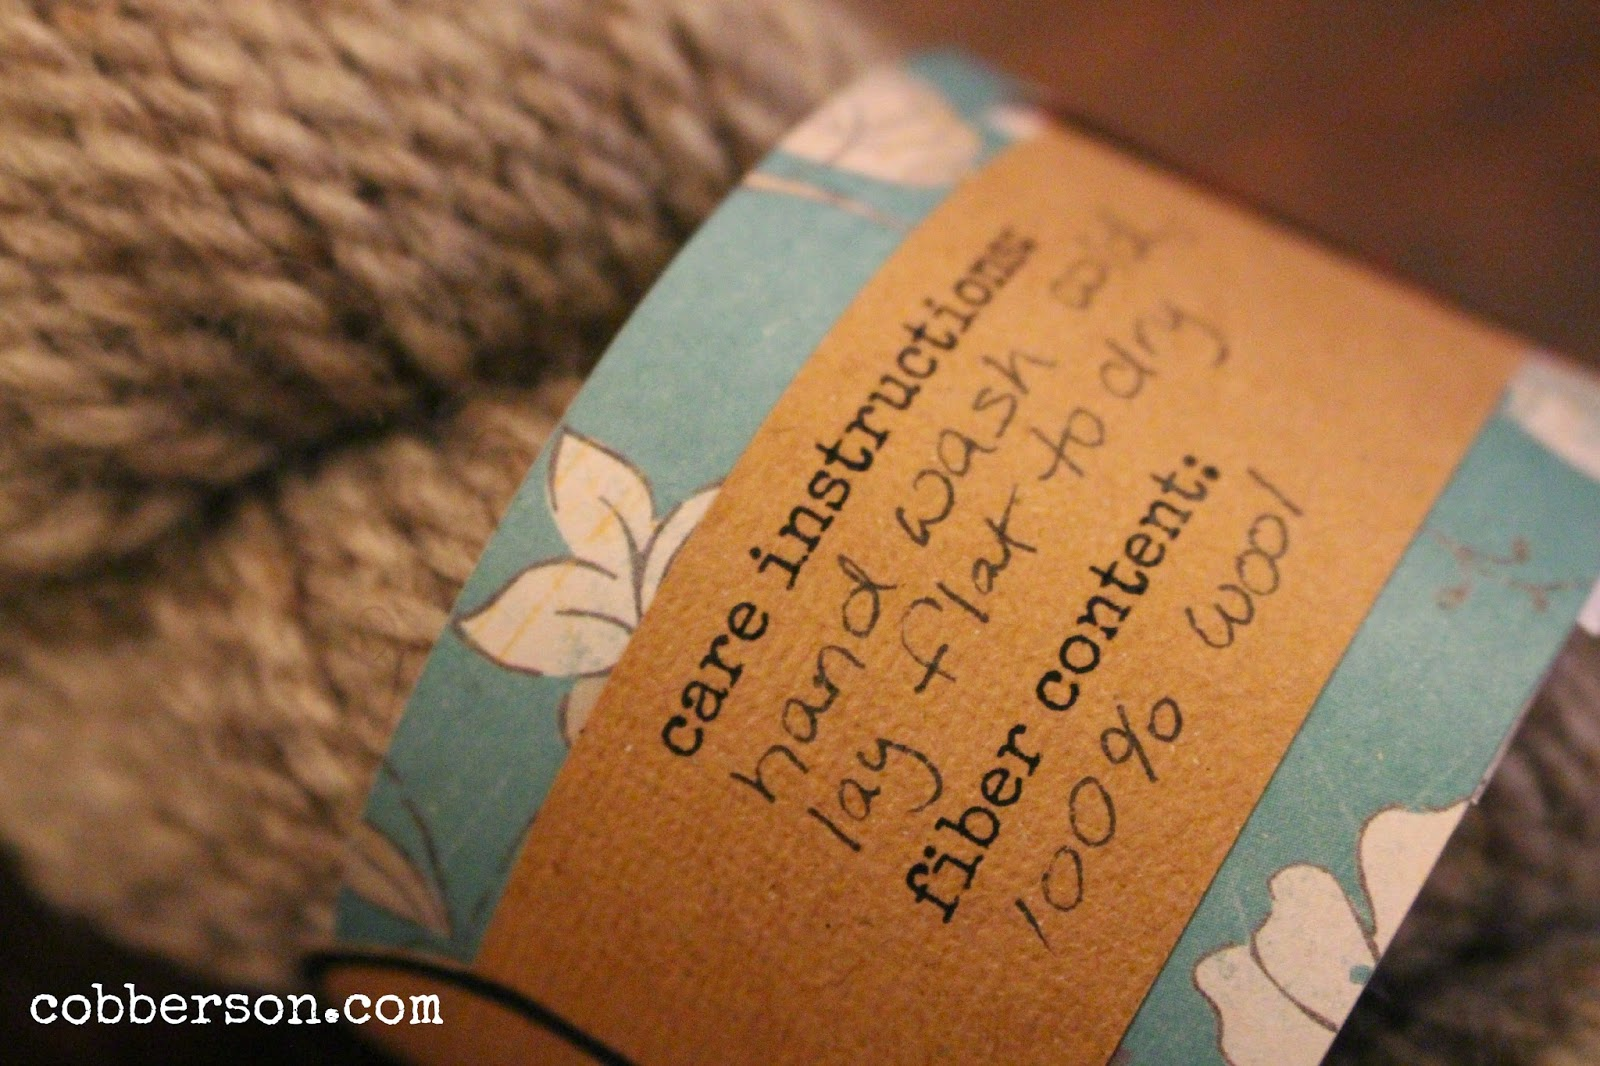 Cobberson & Co. Handspun with love free printable gift tag